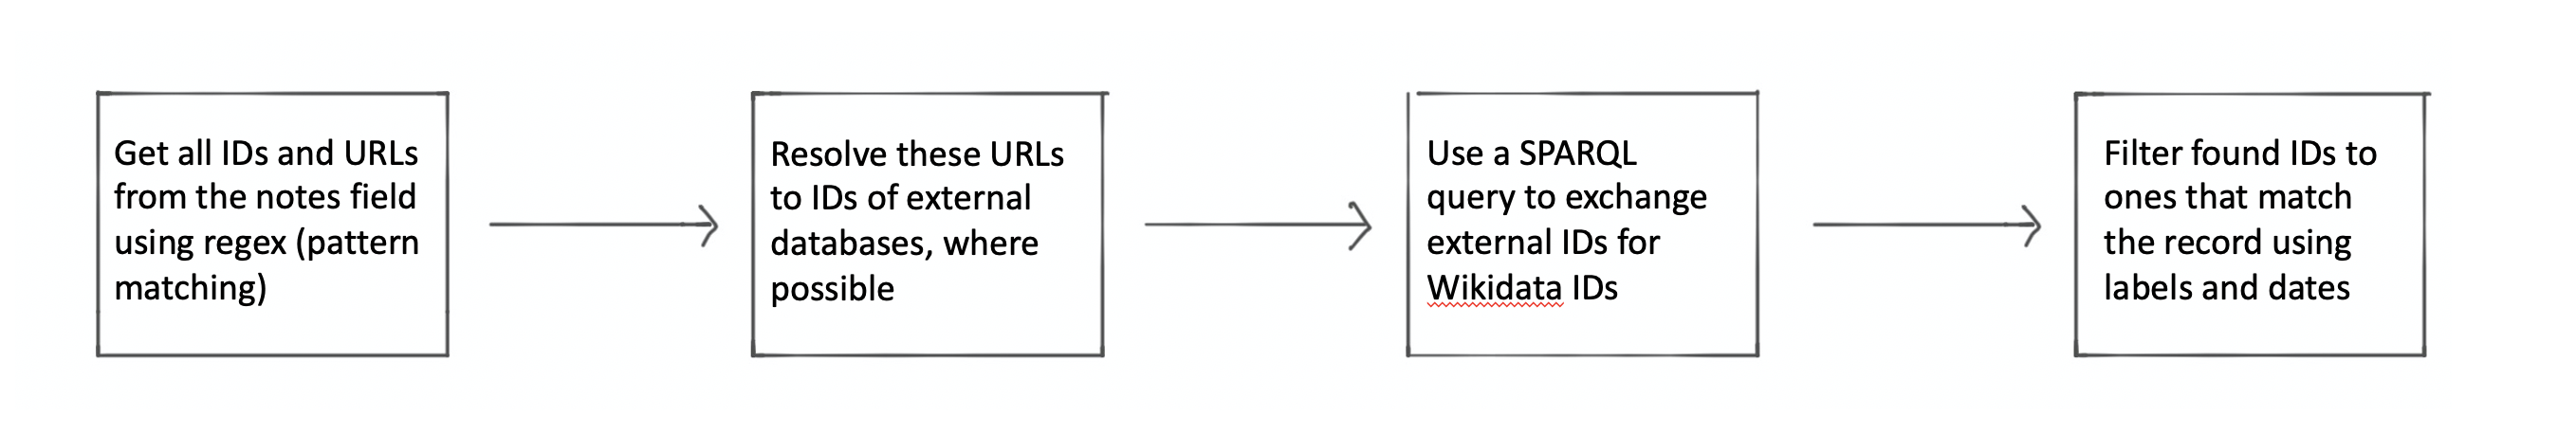 Steps in the process to generate Wikidata links from existing IDs and URLs found in the Collection.